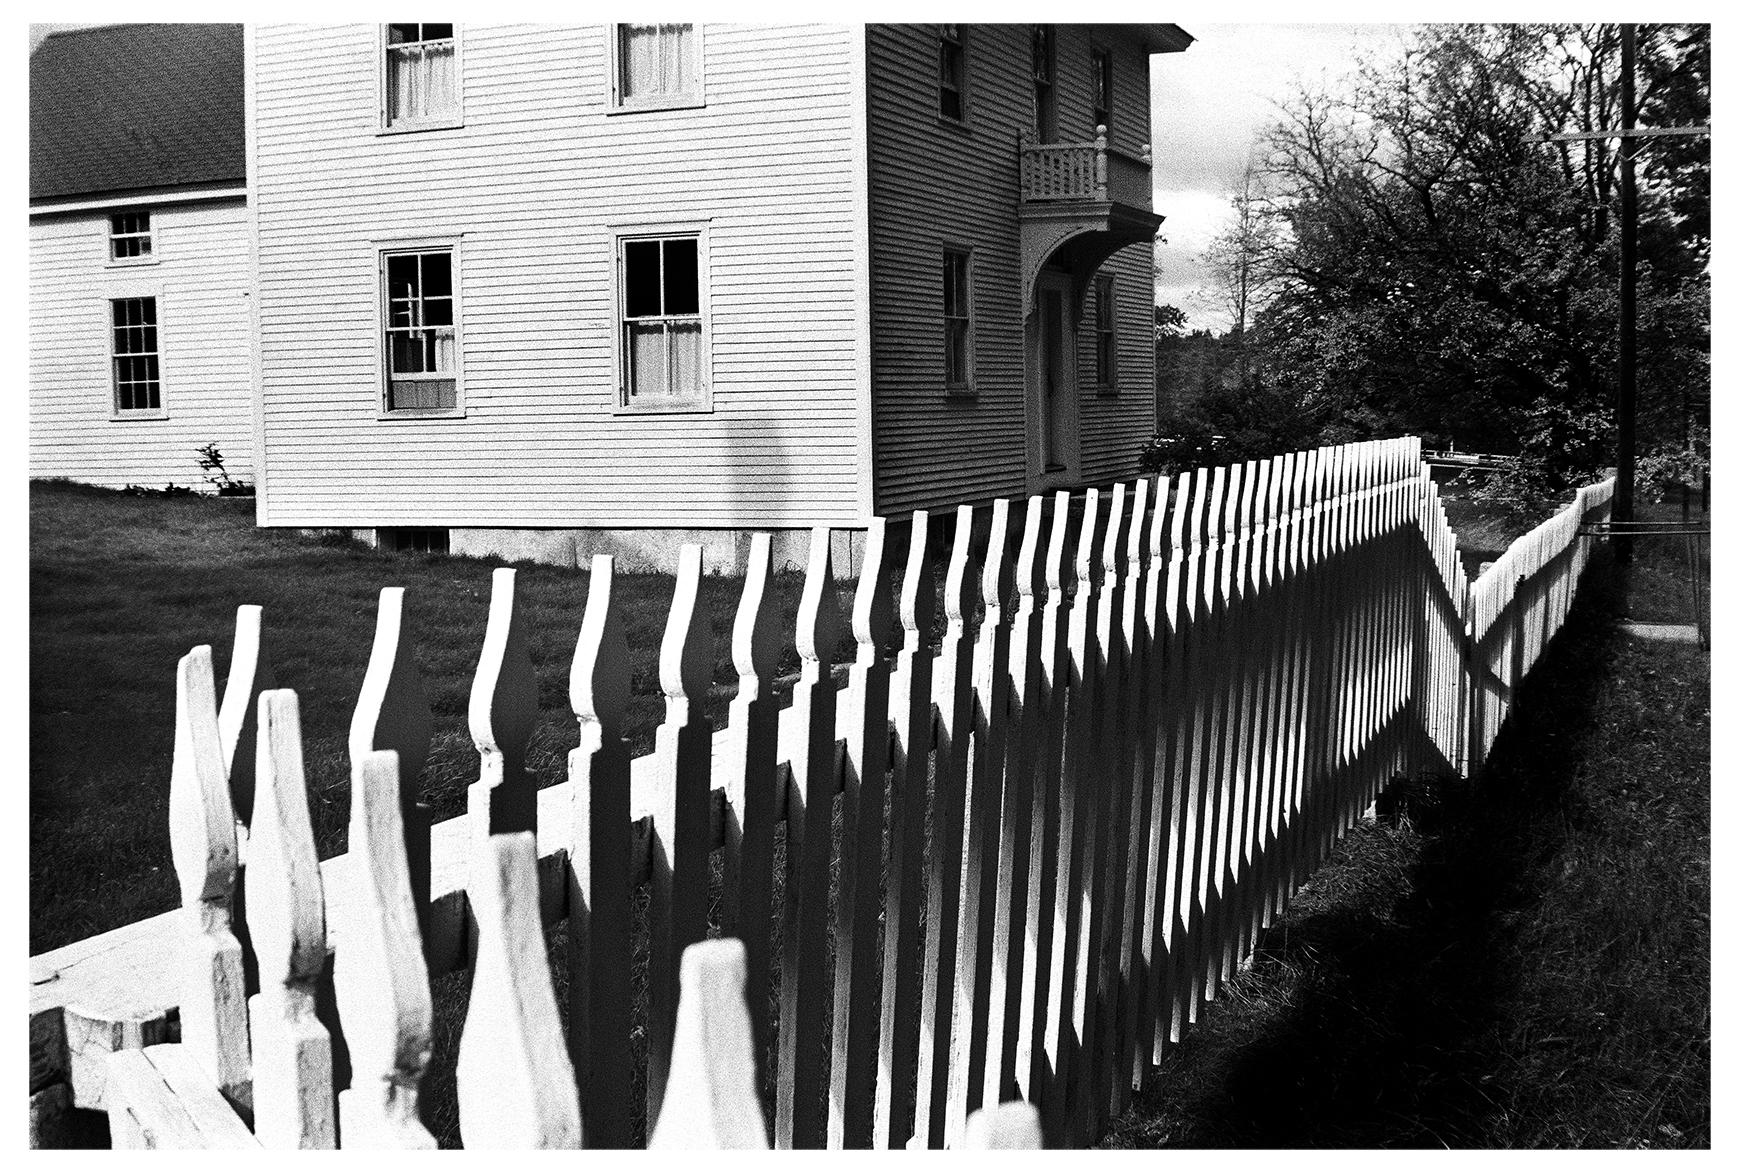 Shaker Fence, Sabbathday Lake, Maine